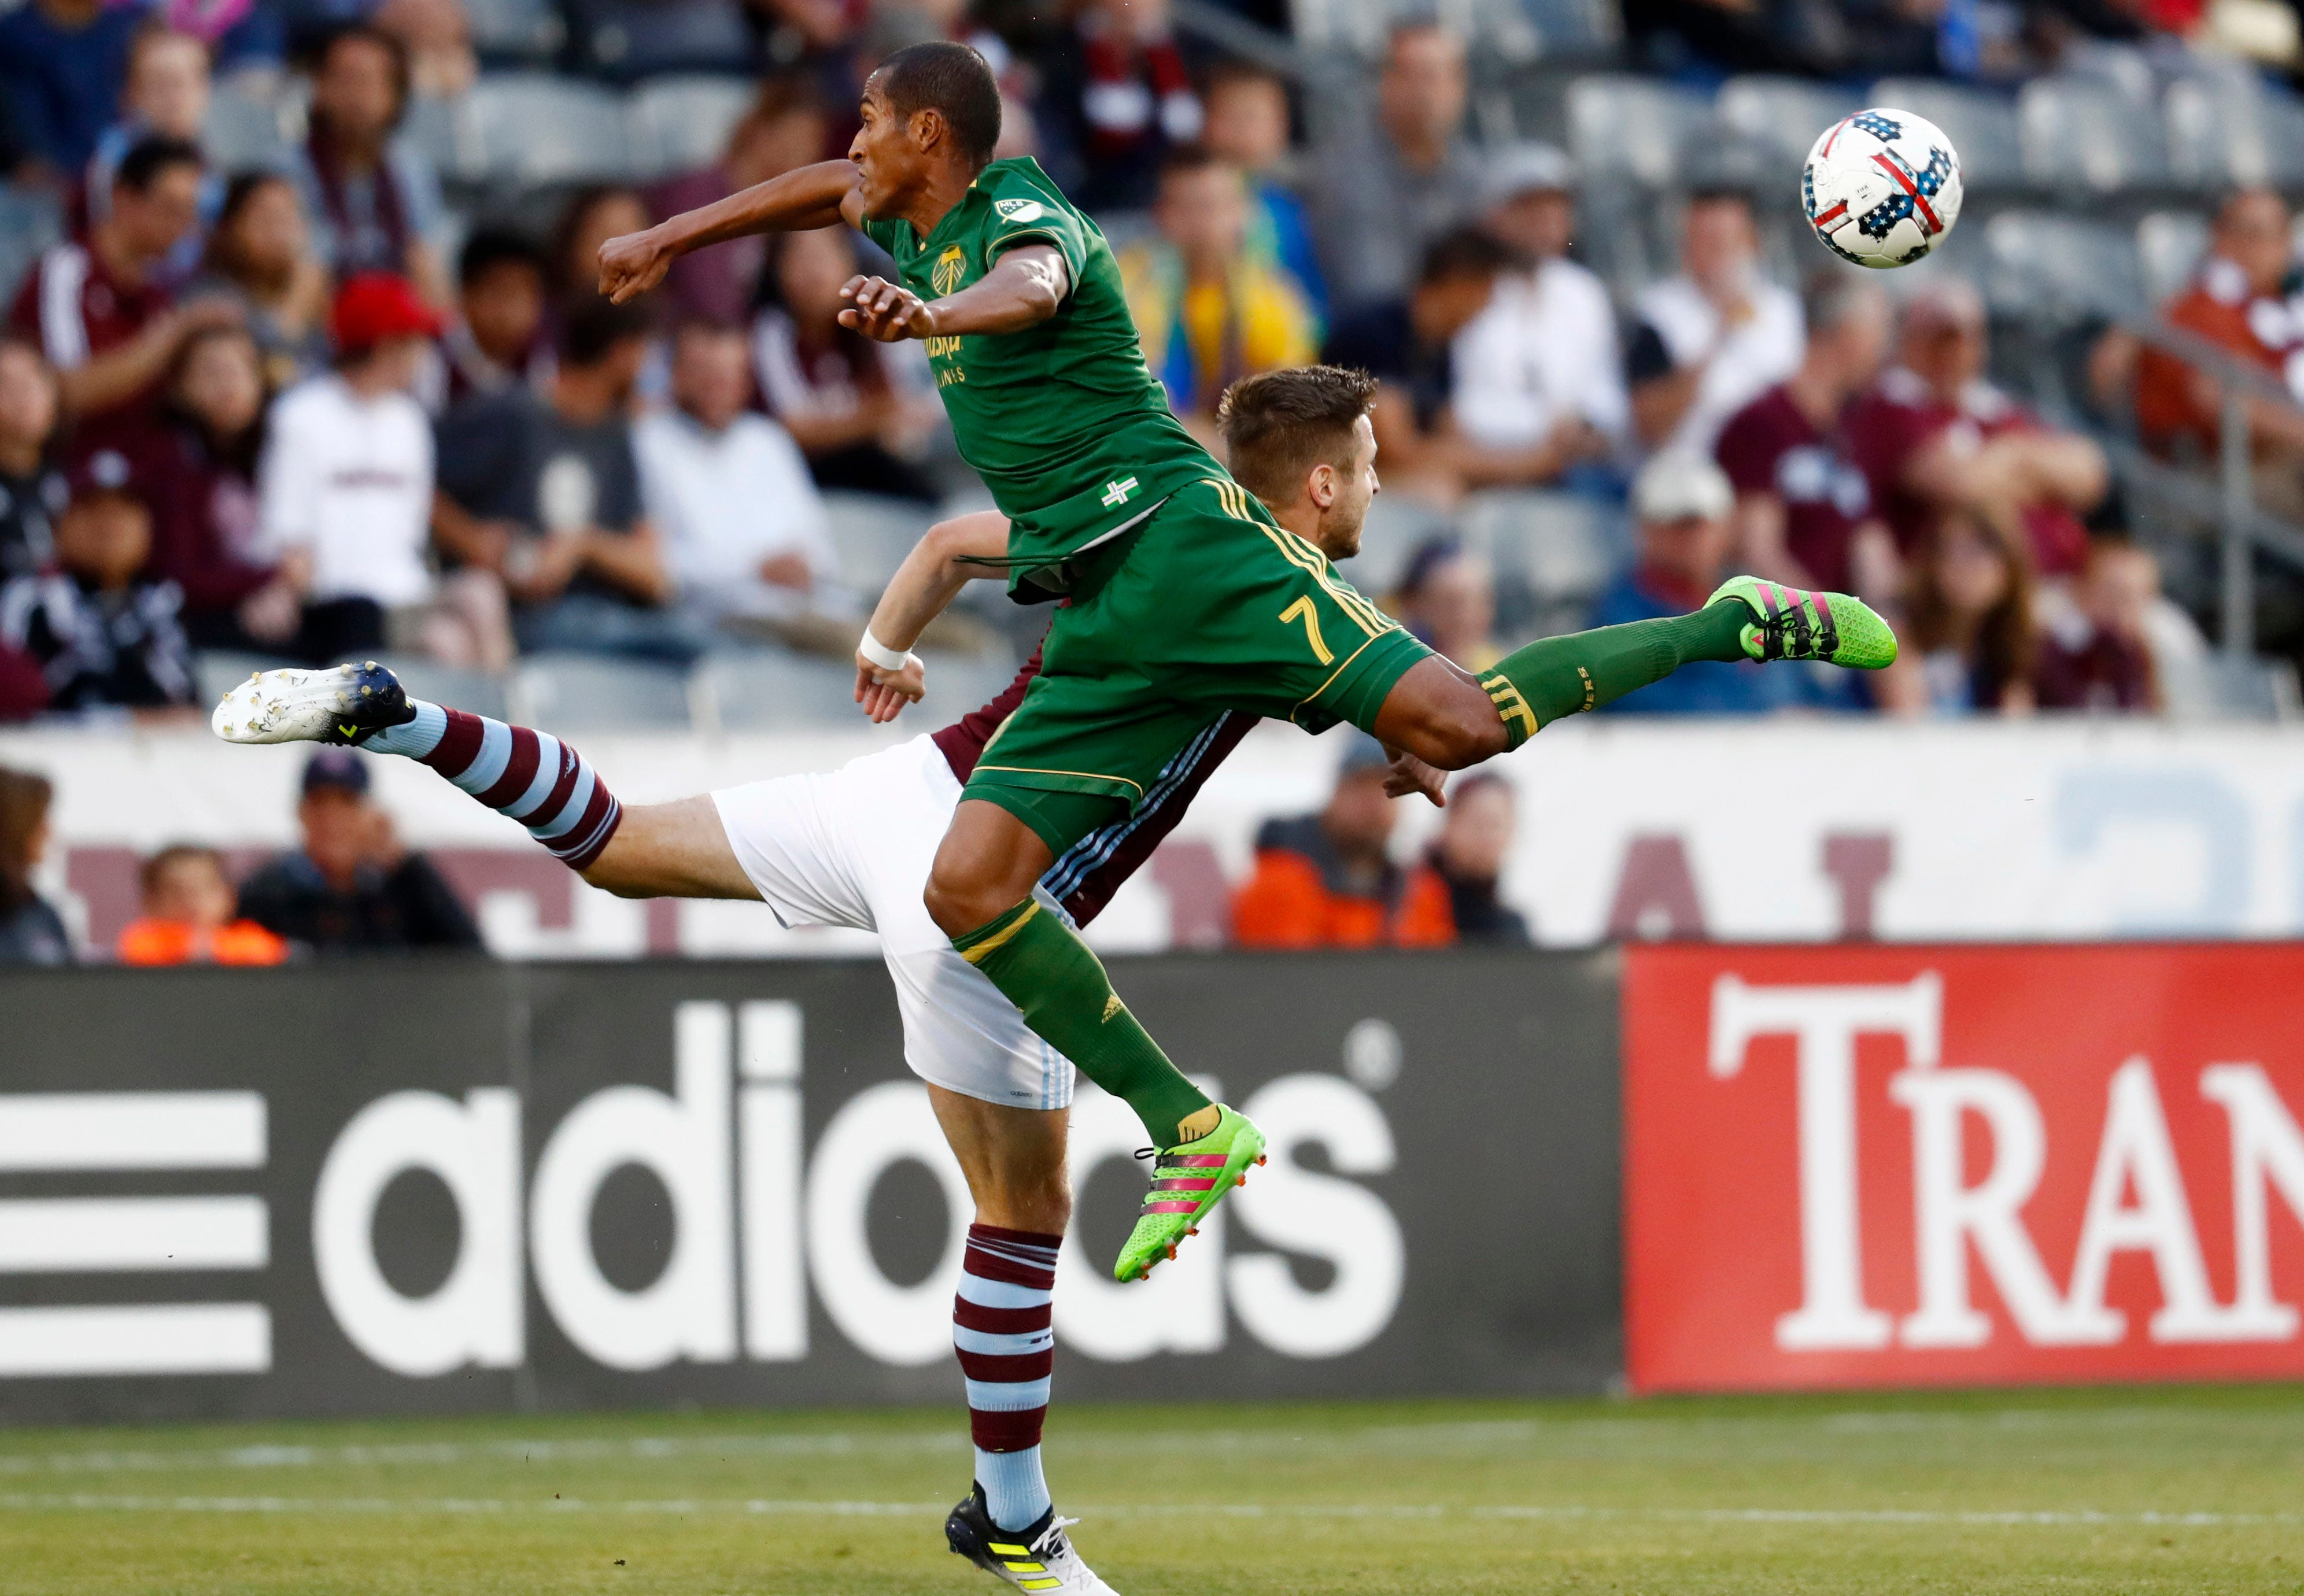 Gordon strikes late again in Rapids' 2-1 win over Timbers